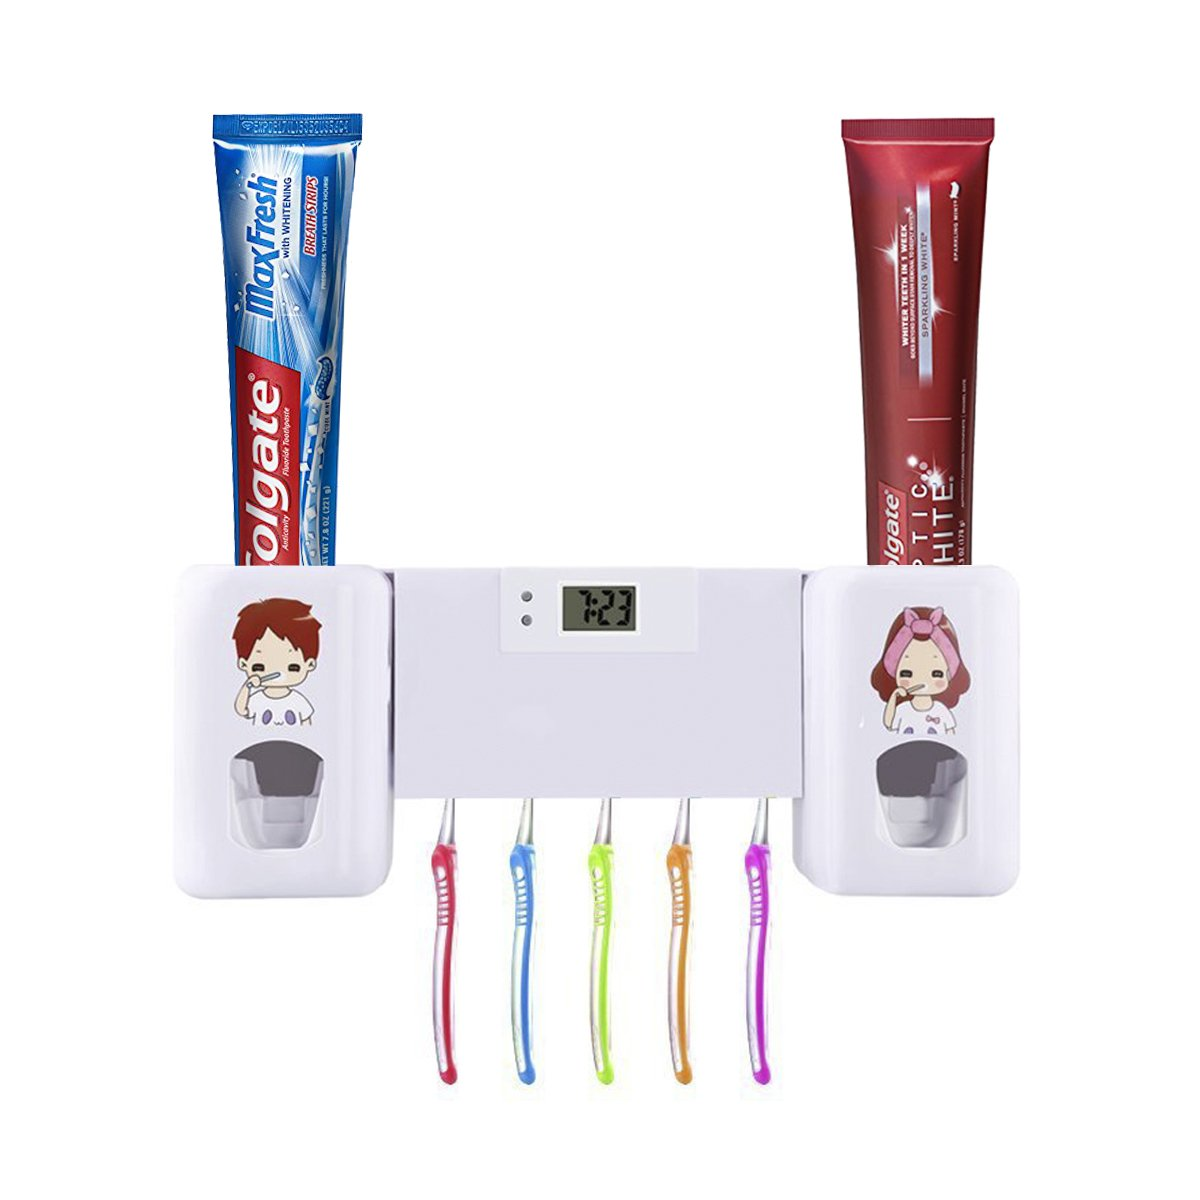 Puersit Automatic Toothpaste Dispenser Toothbrush Holder Set Hands Free Double Toothpaste Squeezer With Electronic Watch For Both Adults And Kids Super Sticky Bathroom Accessory Set